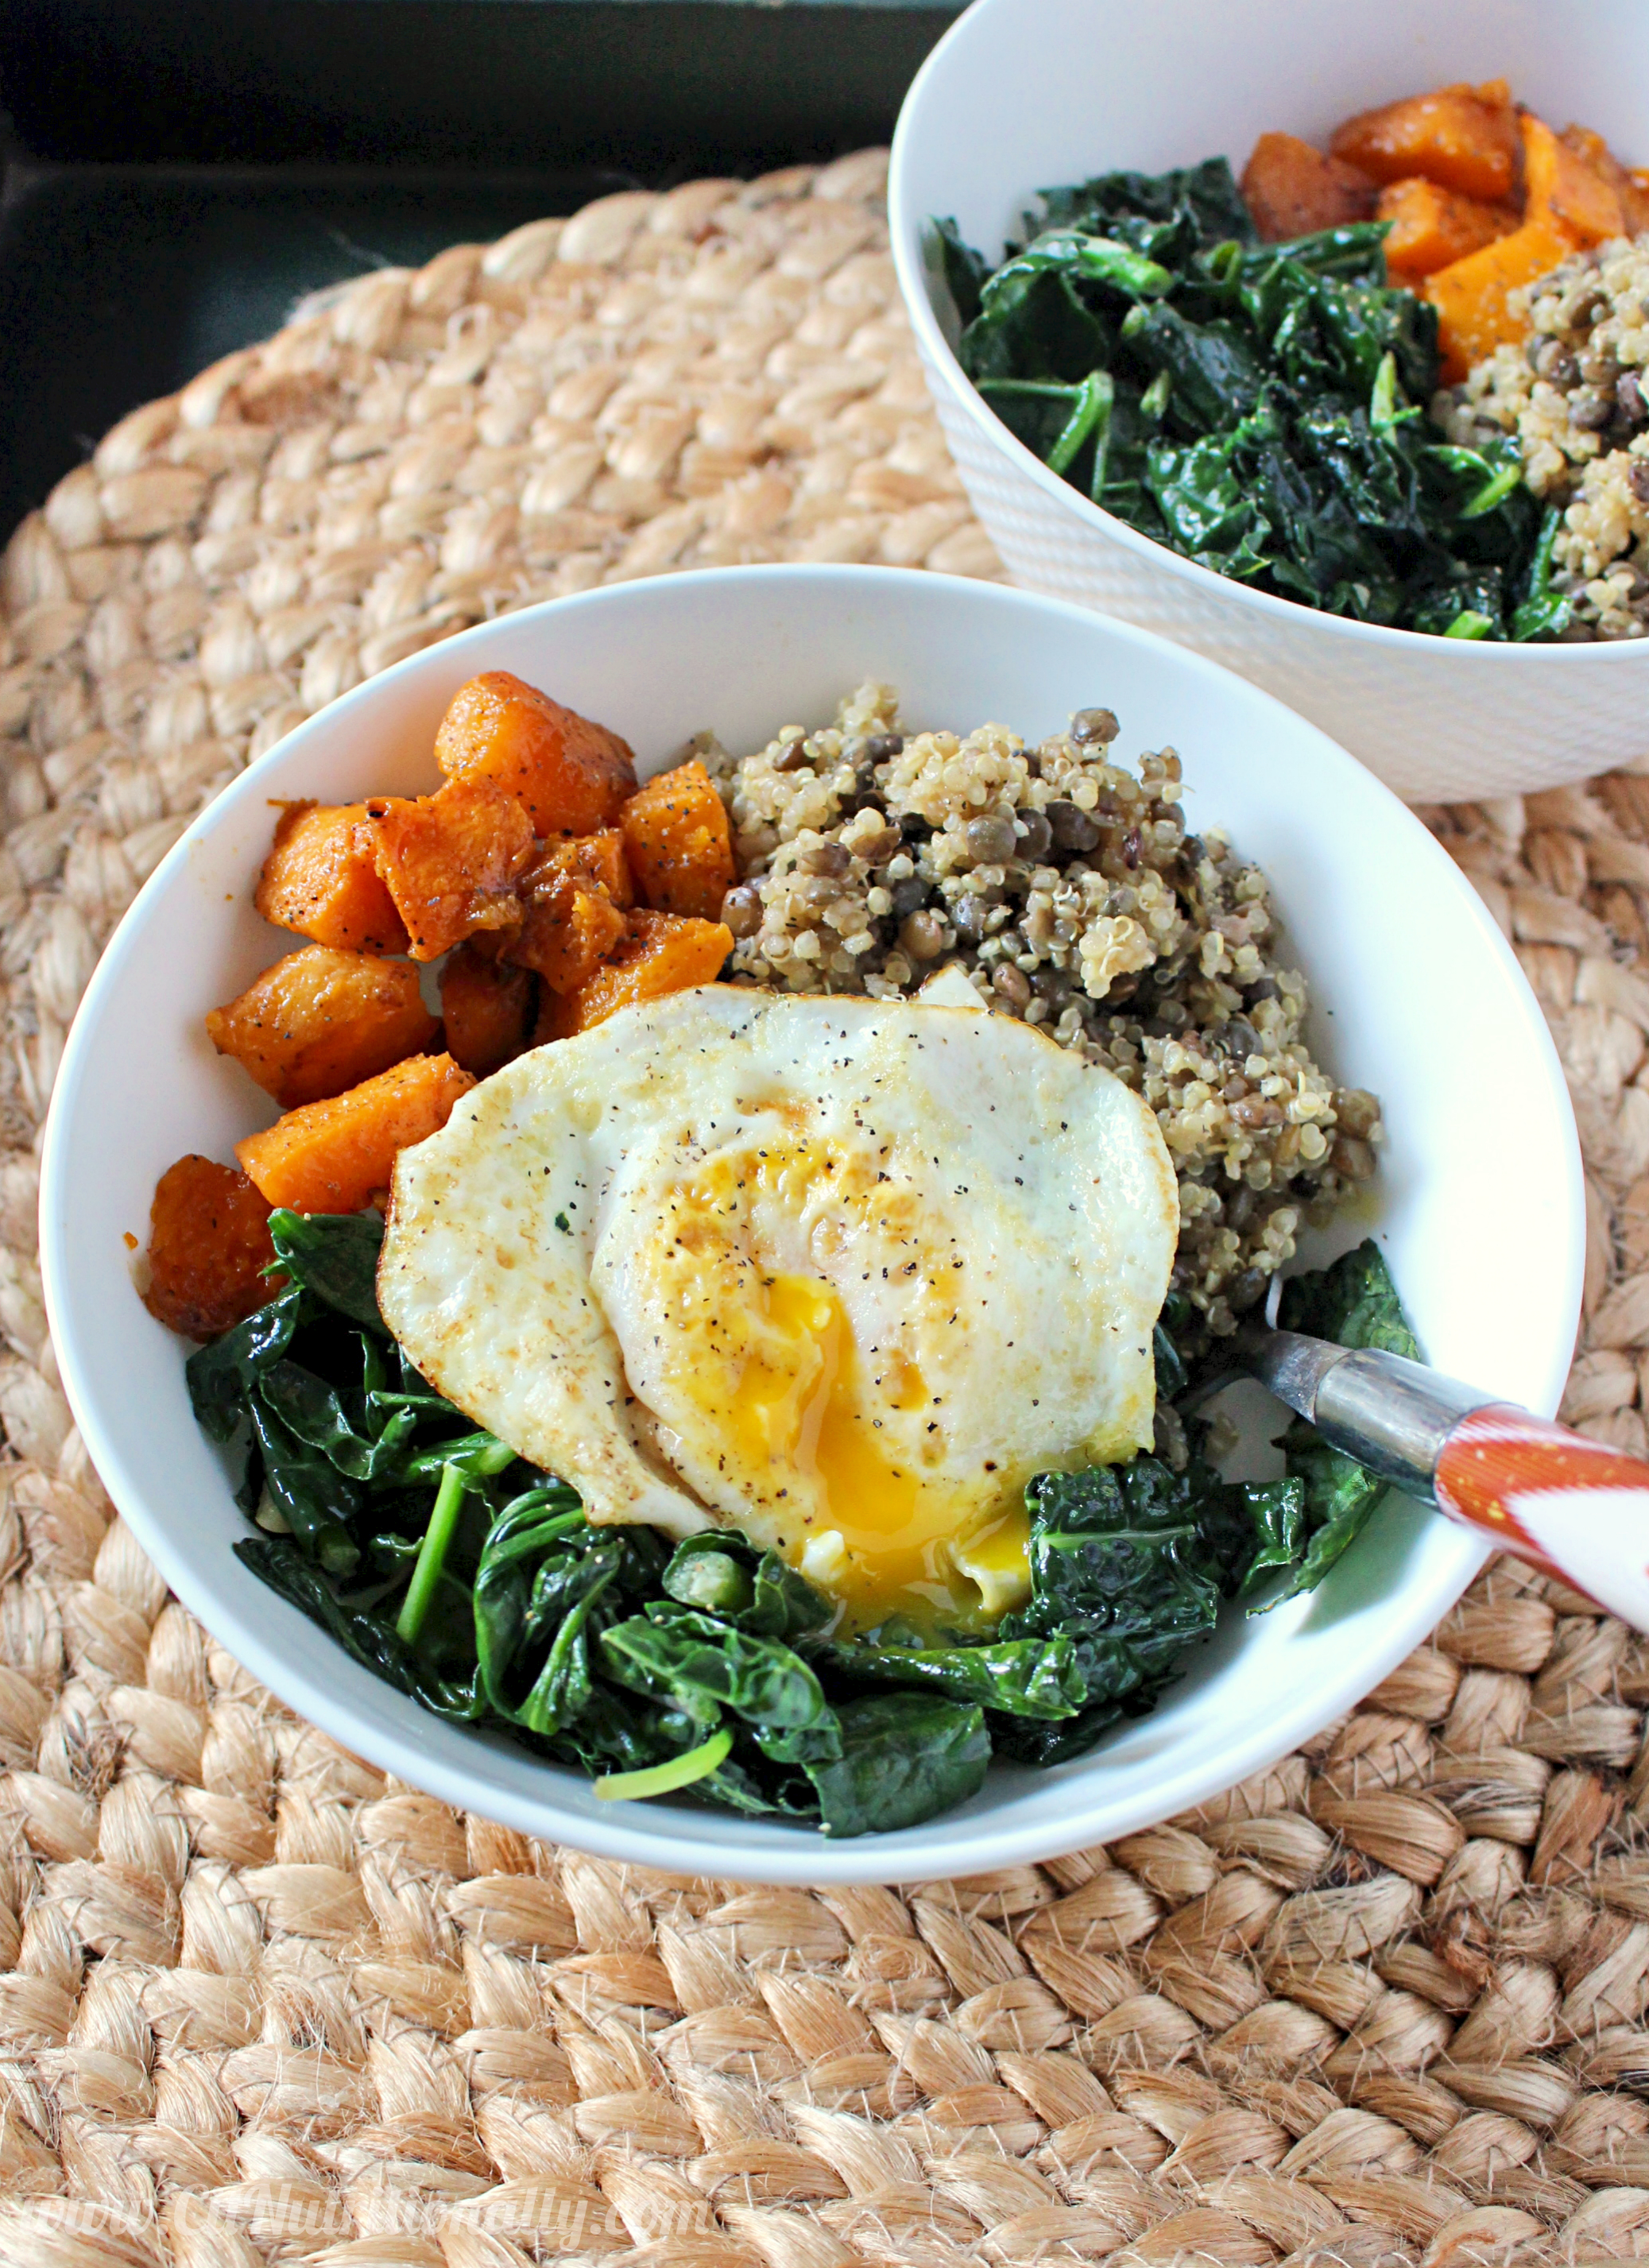 Quinoa and Lentil Power Bowl | C it Nutritionally #glutenfree #vegan option #MeatlessMonday